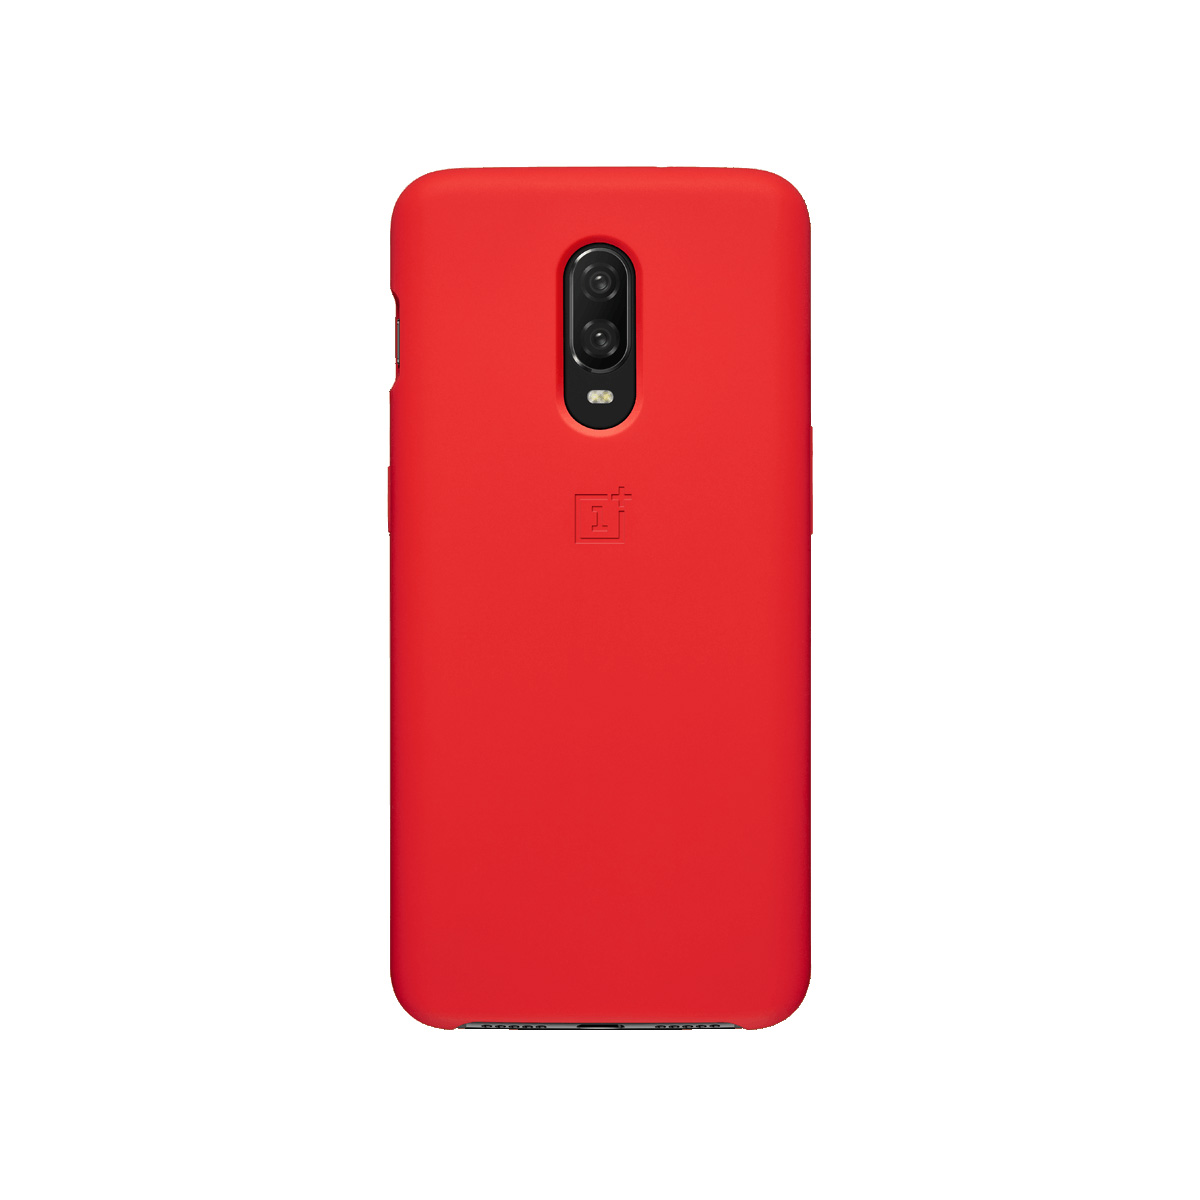 Image 5 - A6013 Official OnePlus 6t Case original 1+6T OnePlus 6 bespoke Silicone Sandstone Nylon Karbon Bumper Leather Flip Cover-in Fitted Cases from Cellphones & Telecommunications